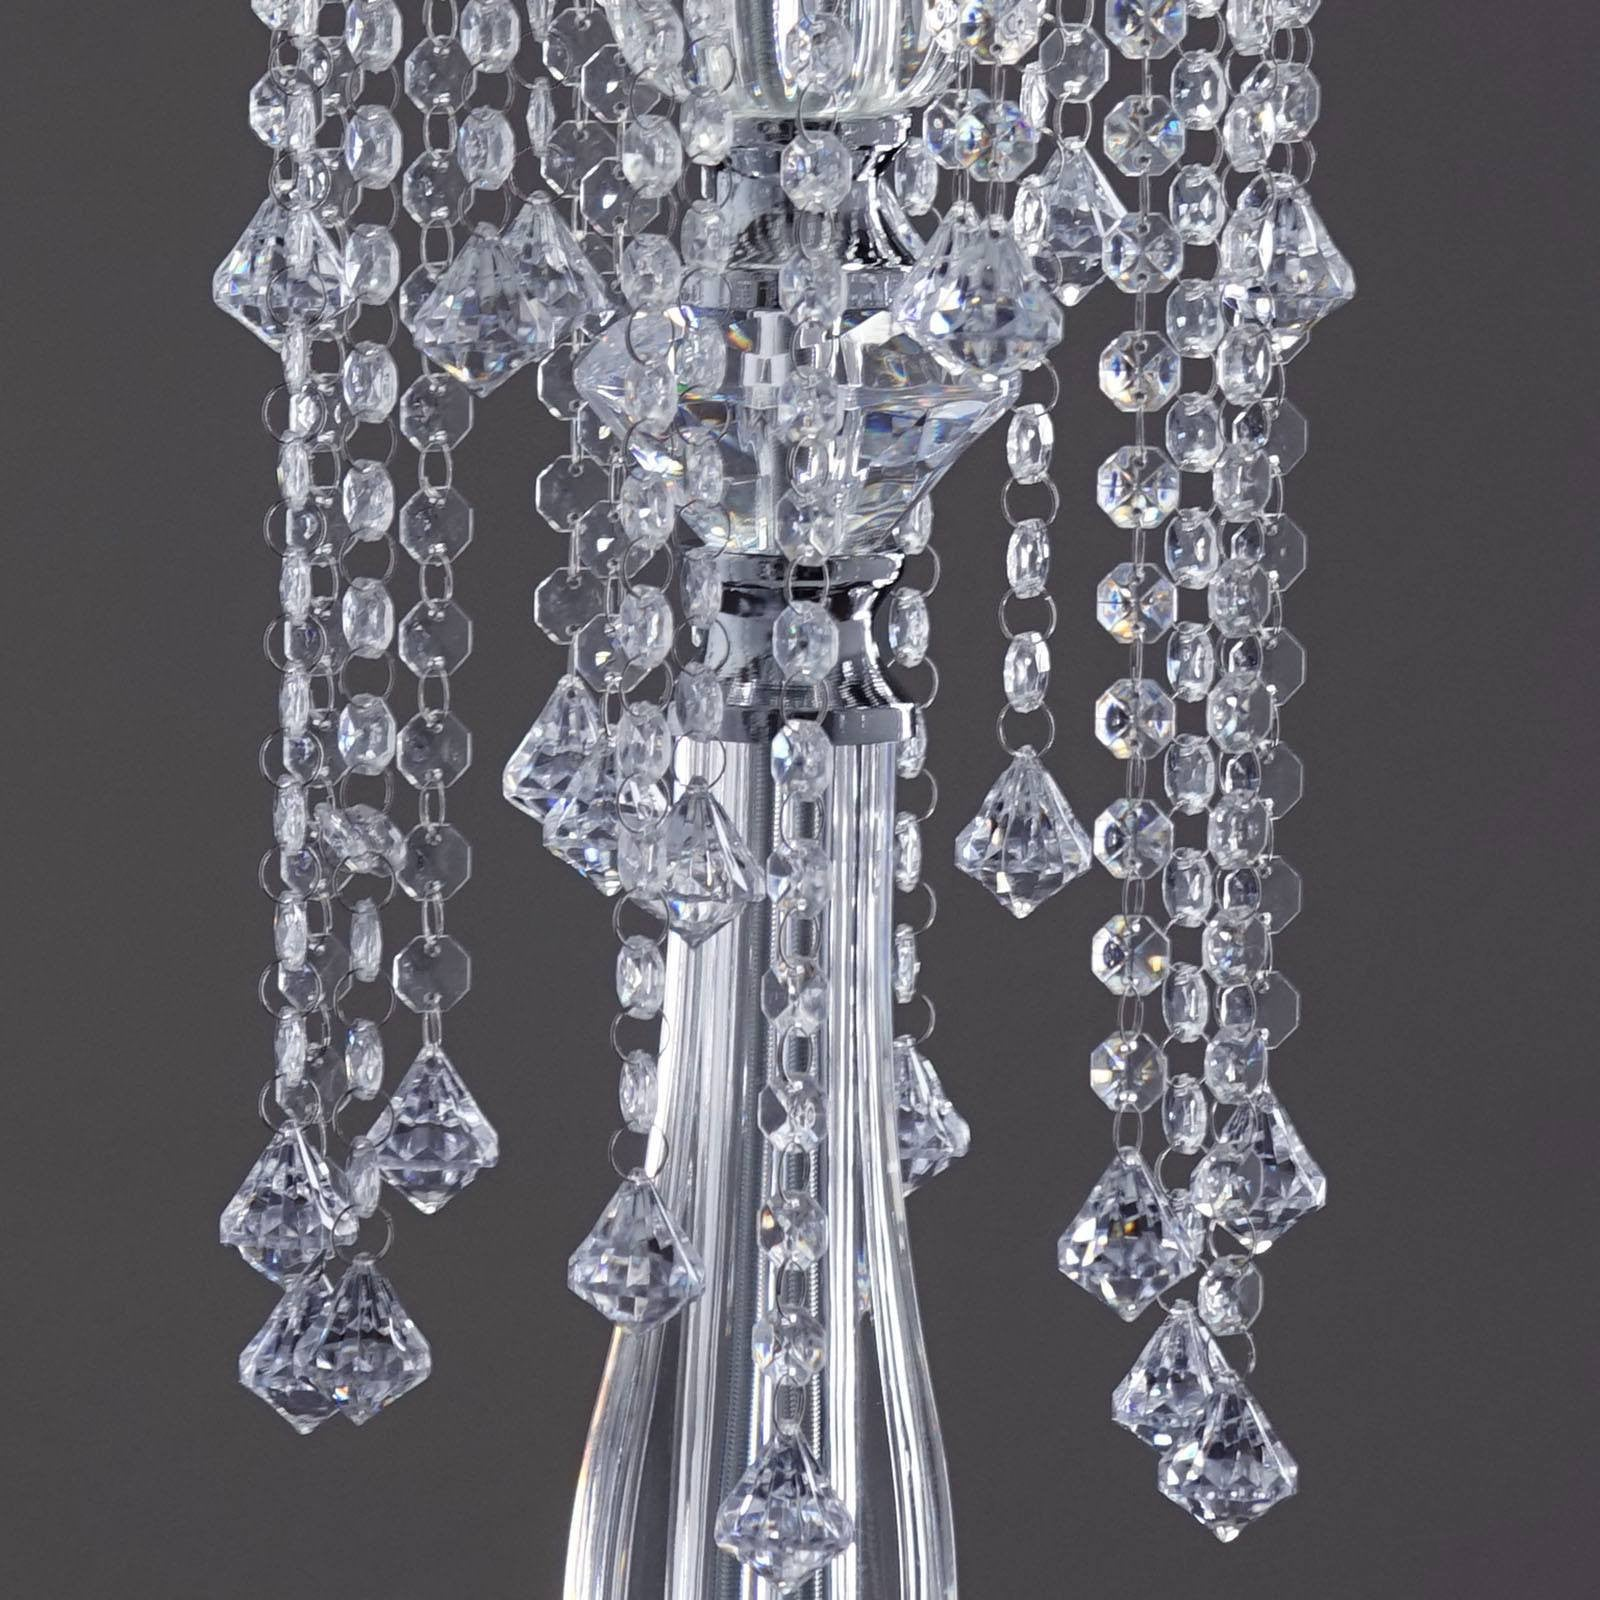 "19 Hanging Crystals with Teardrops Chandelier 28"" tall"